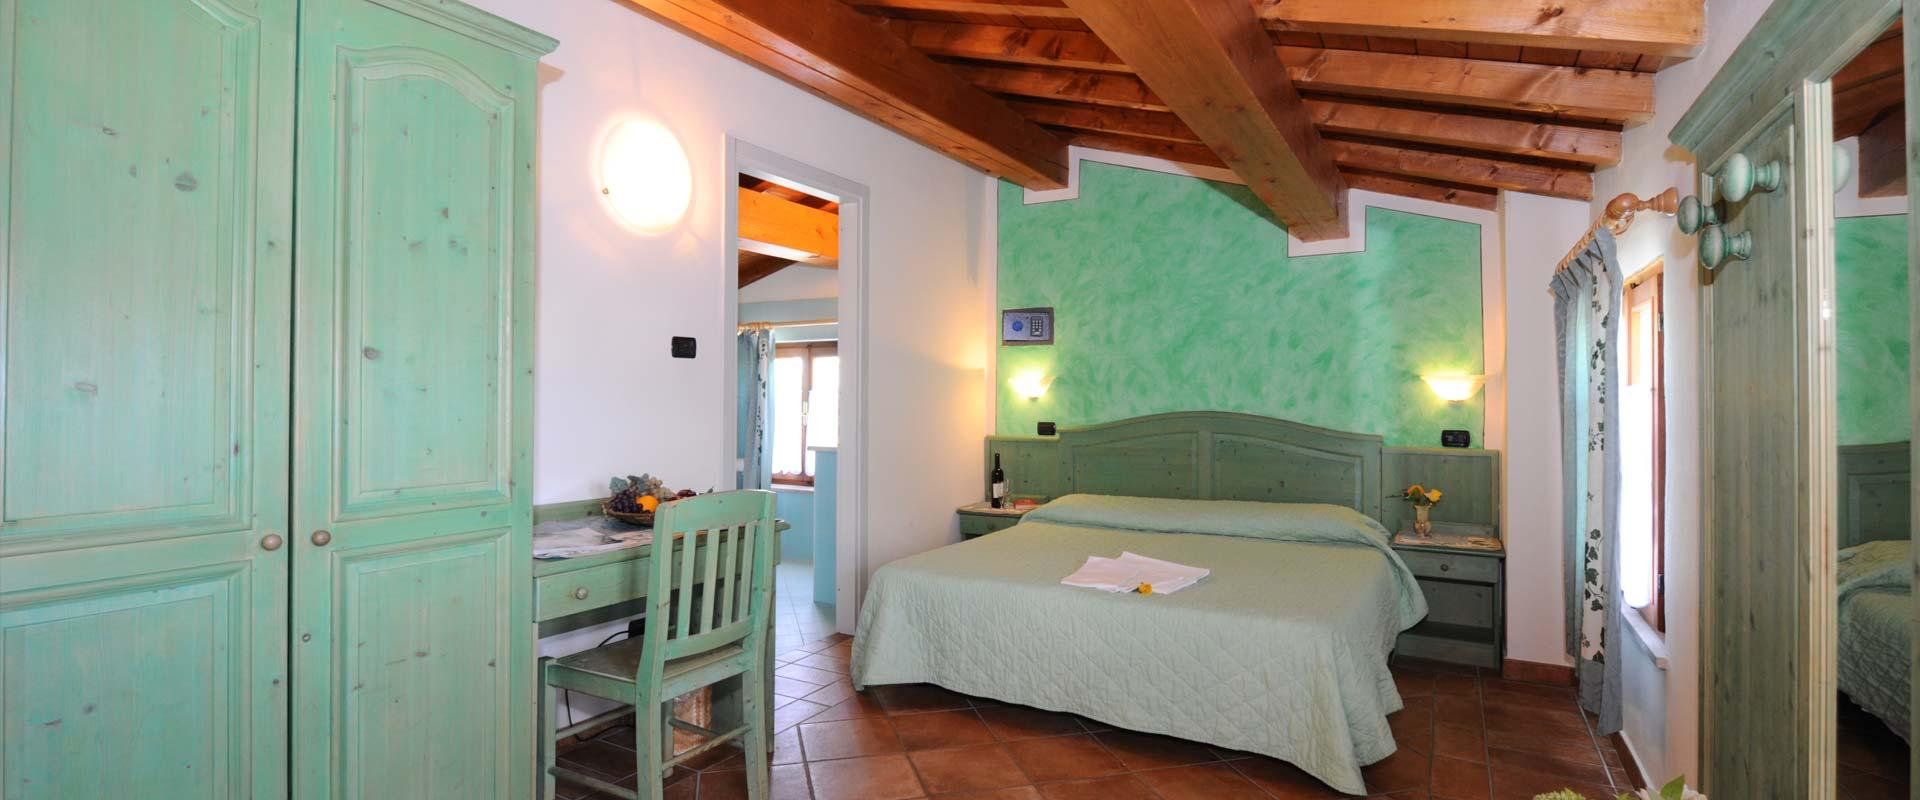 Rooms Peschiera del Garda